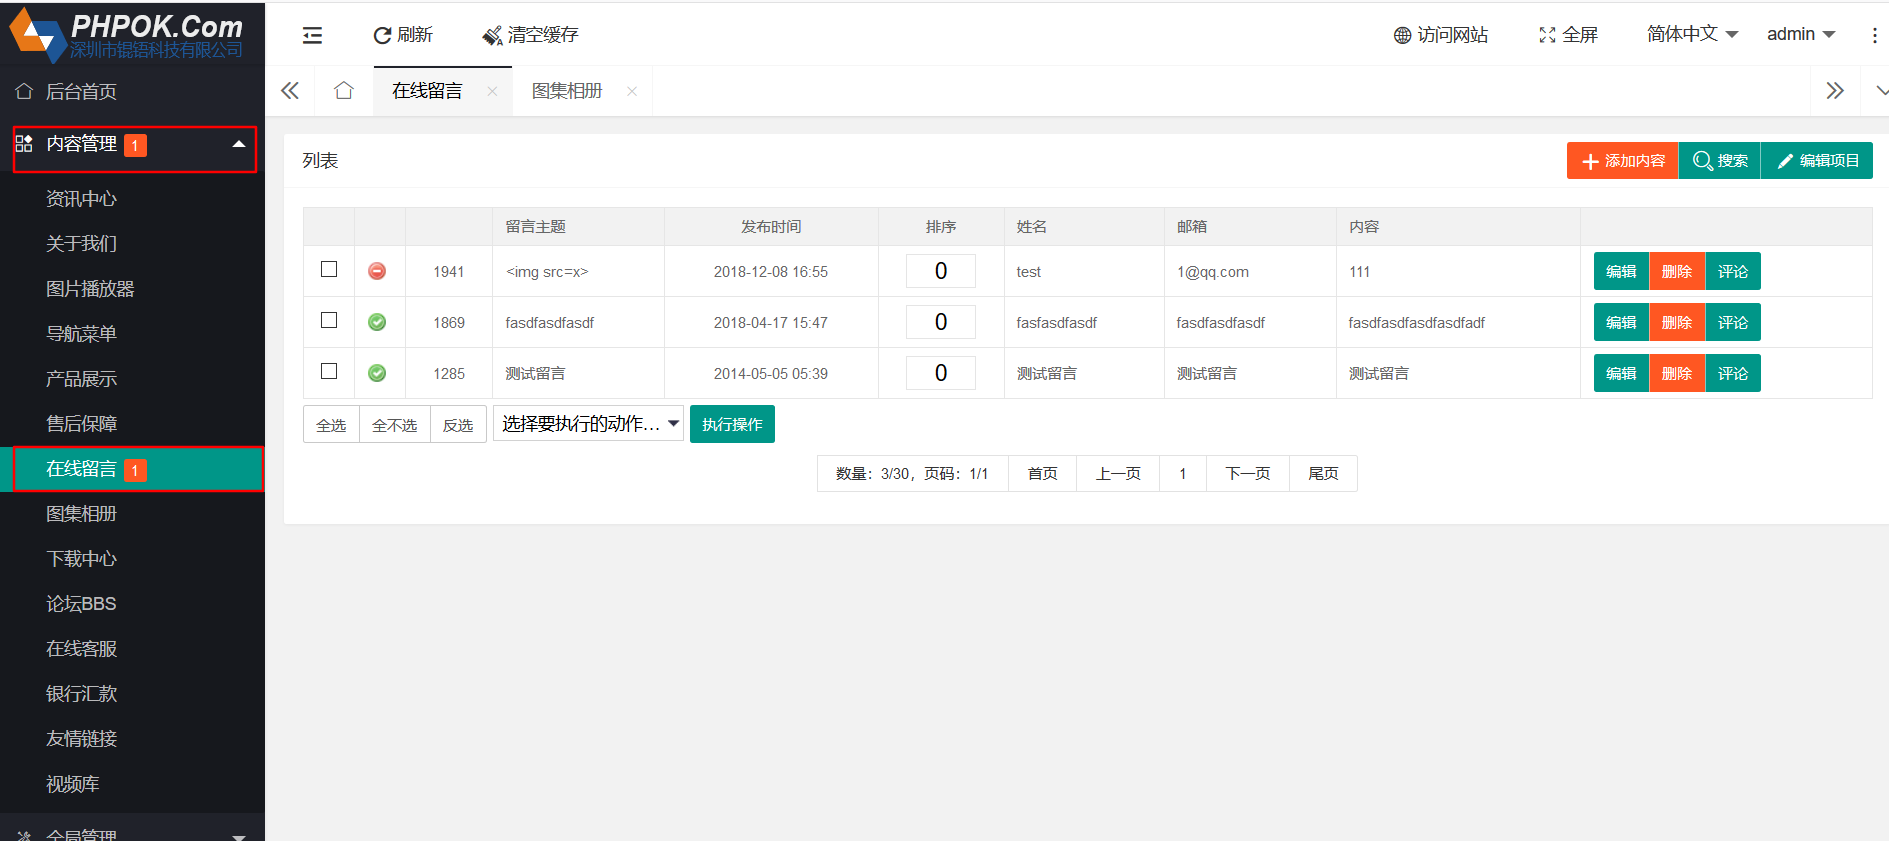 phpok 5 0 055 Store XSS vulnerability that can get the